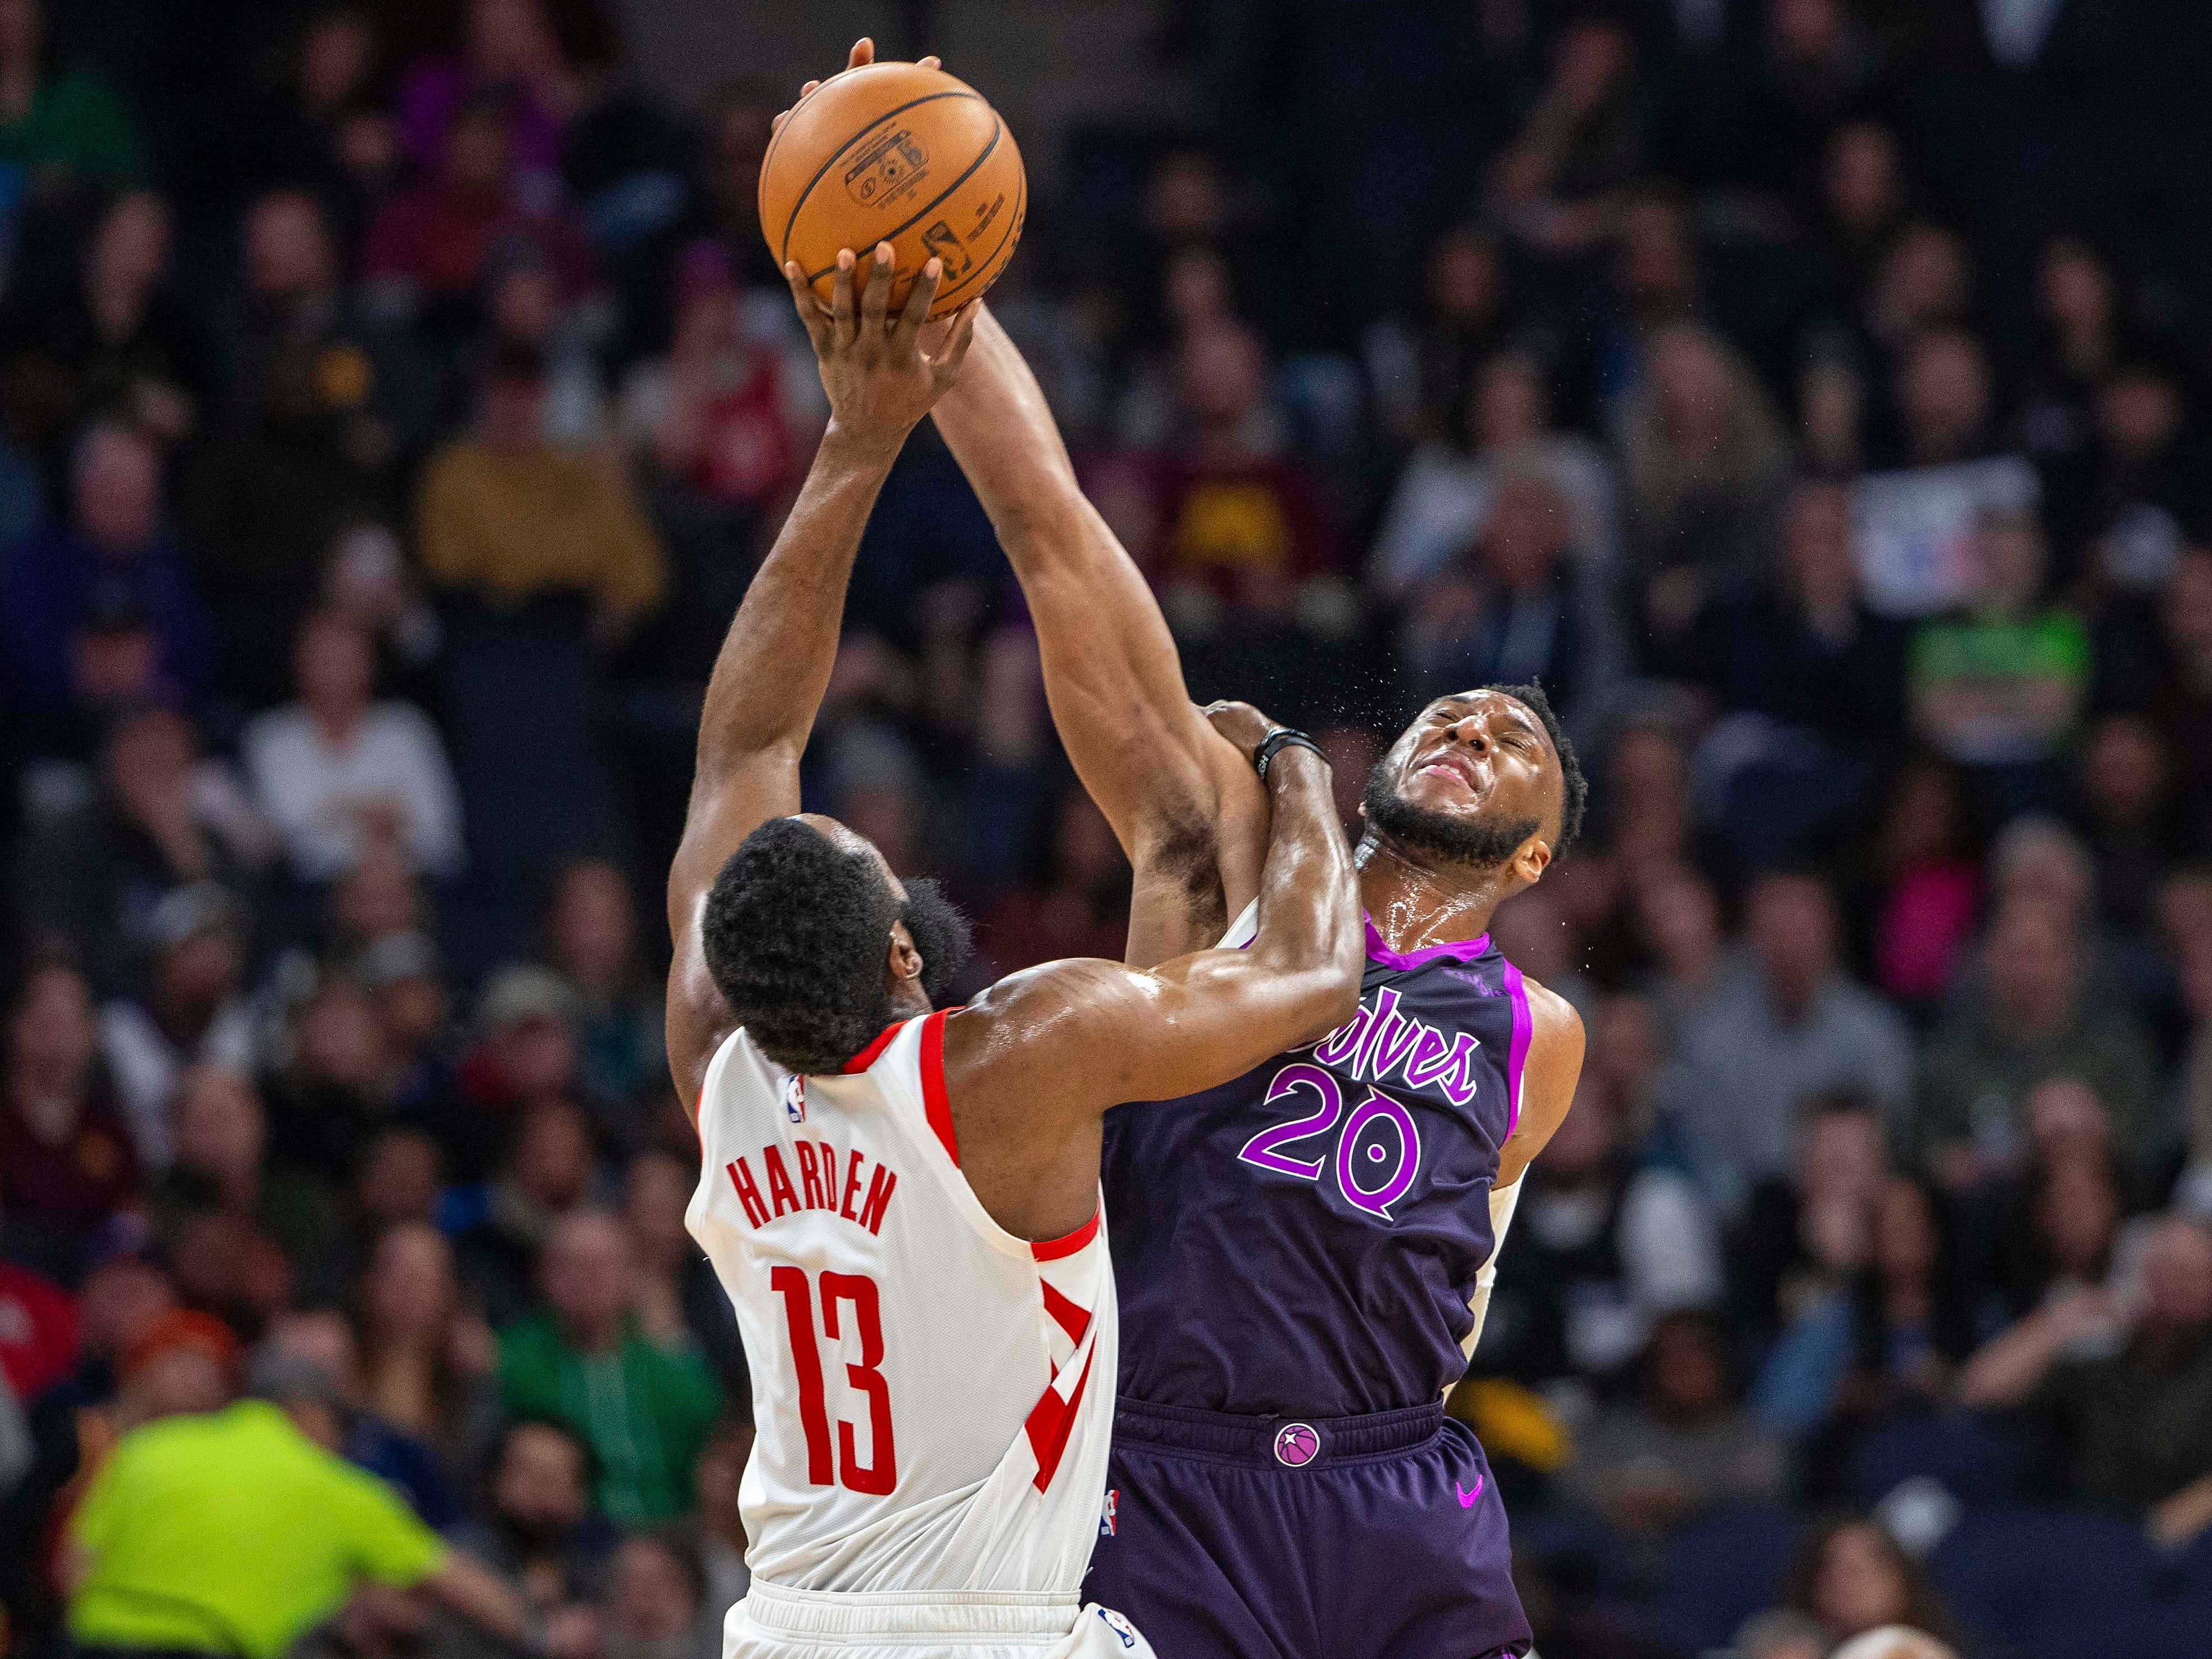 Feb. 13: T'wolves guard Josh Okogie (20) blocks Rockets guard James Harden (13) on a 3-point attempt during the second half in Minneapolis.